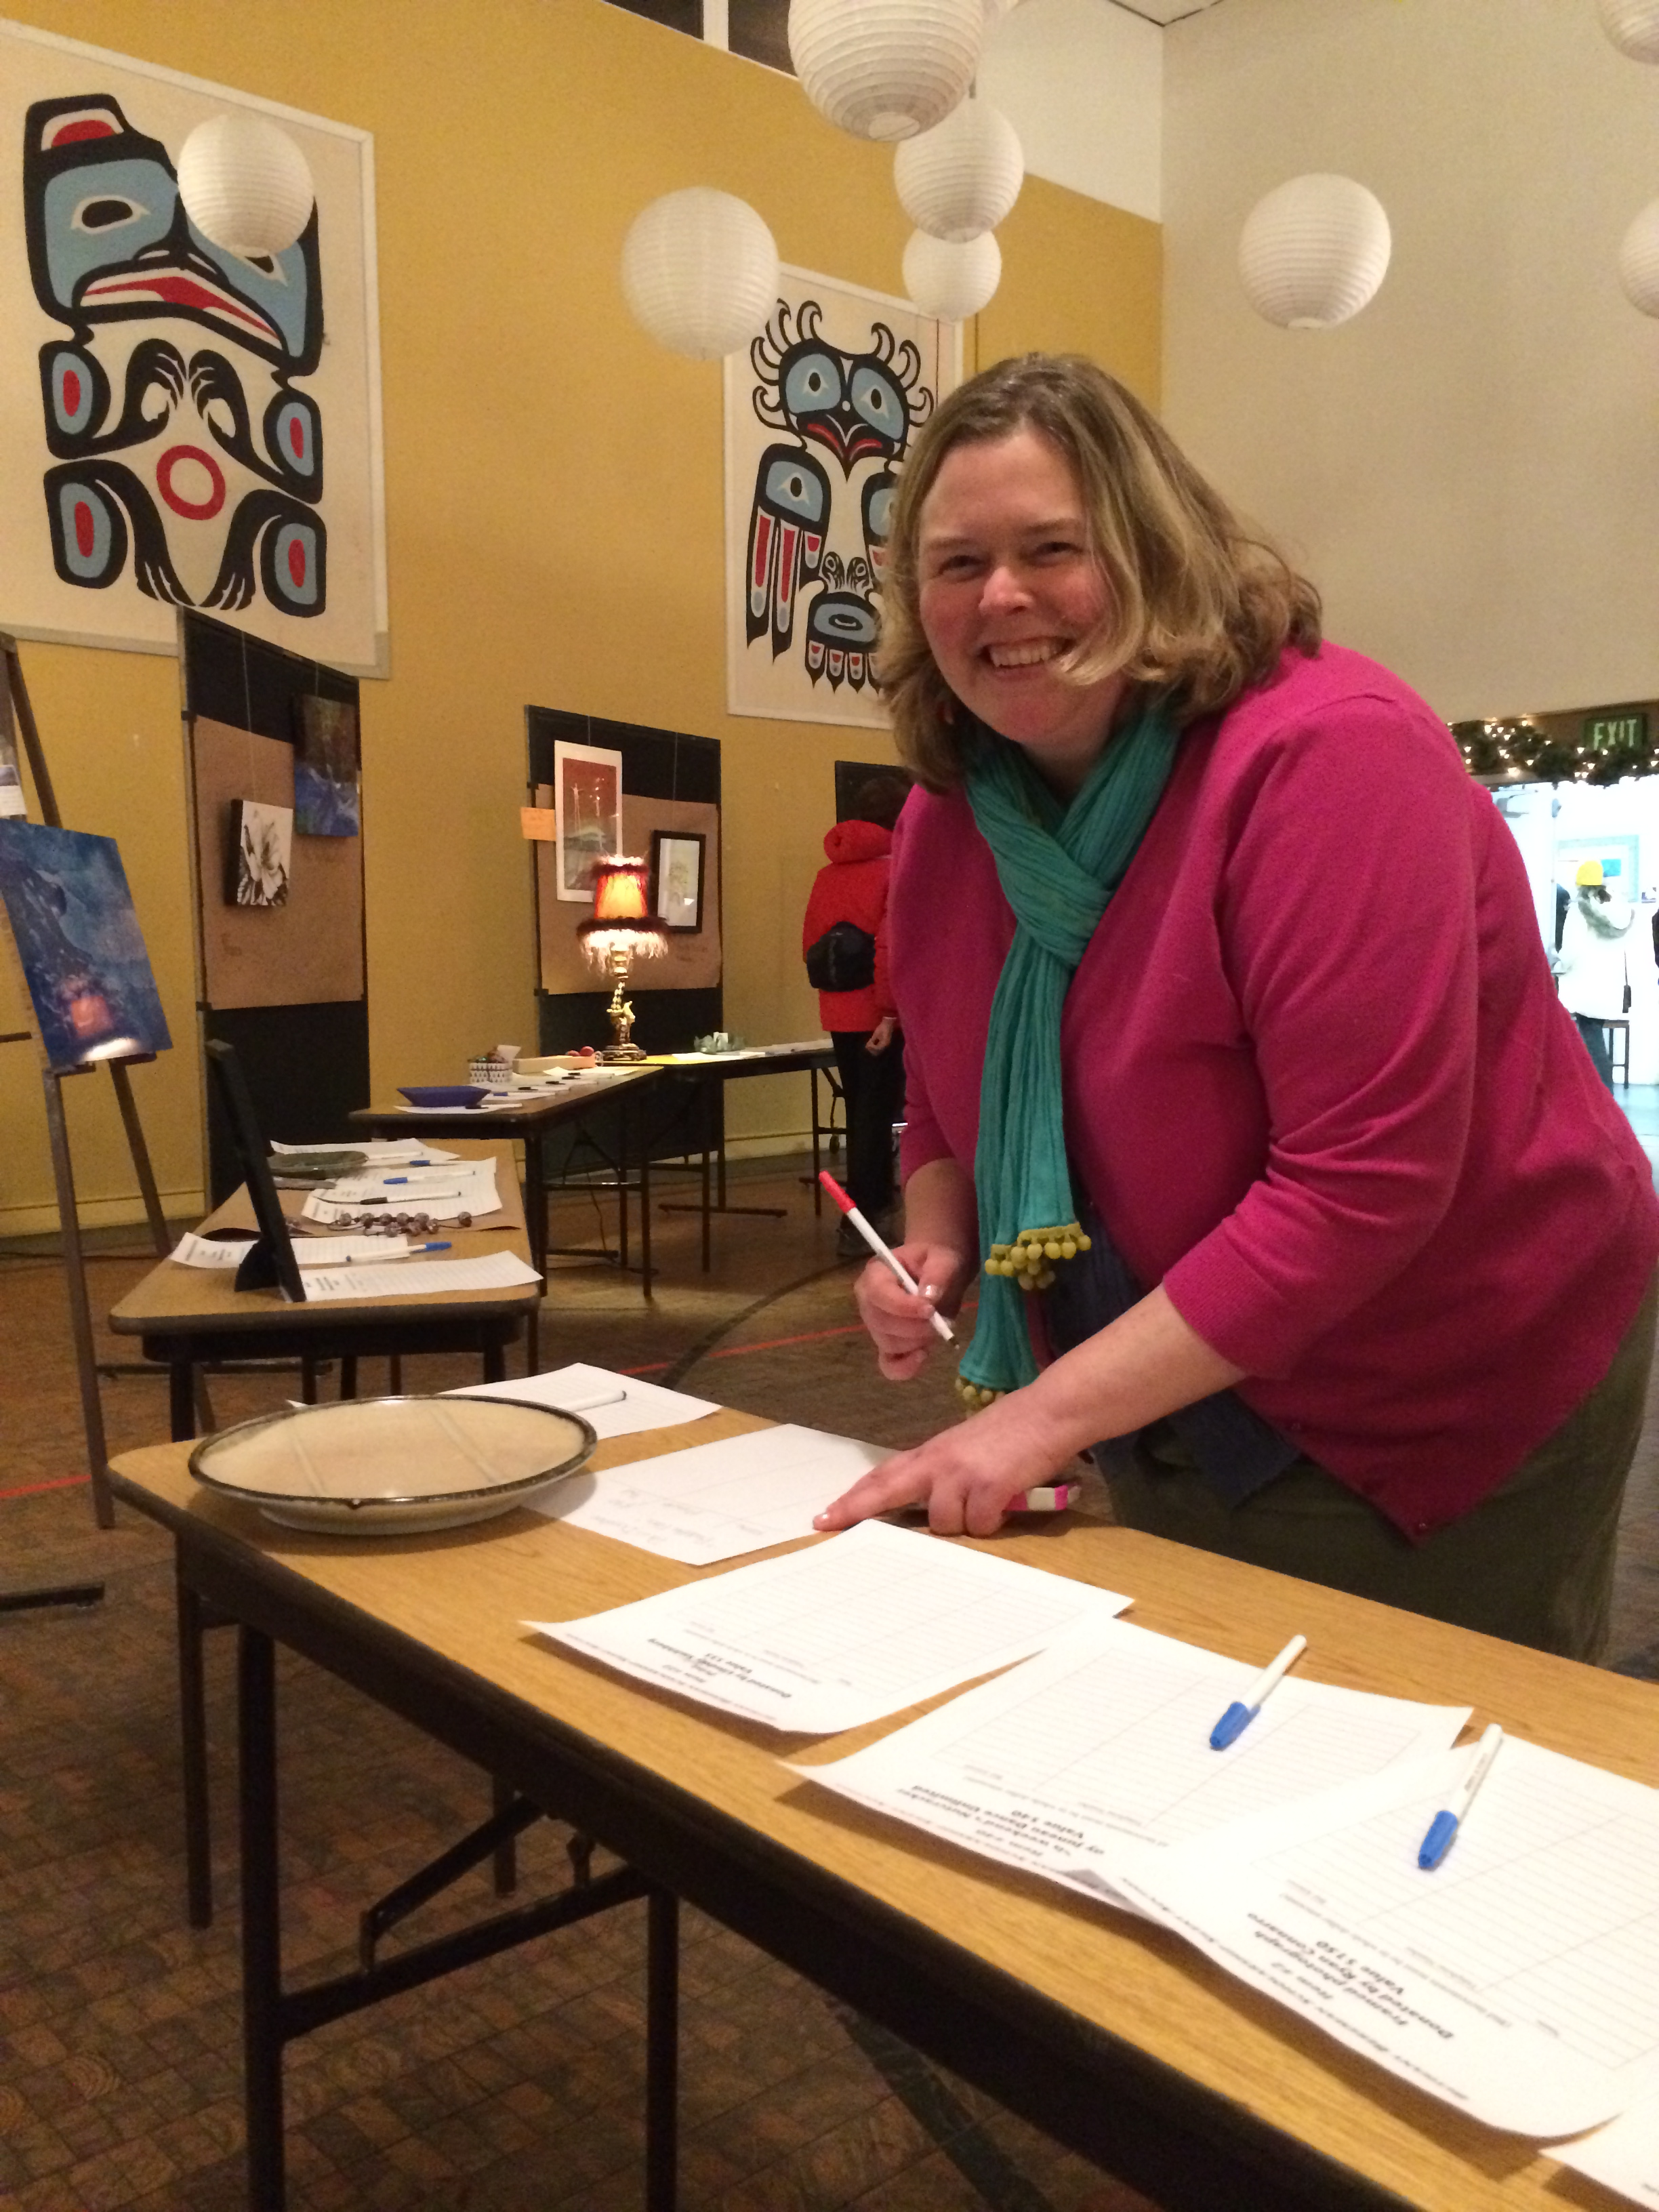 Kristen Garot organizing the silent auction.